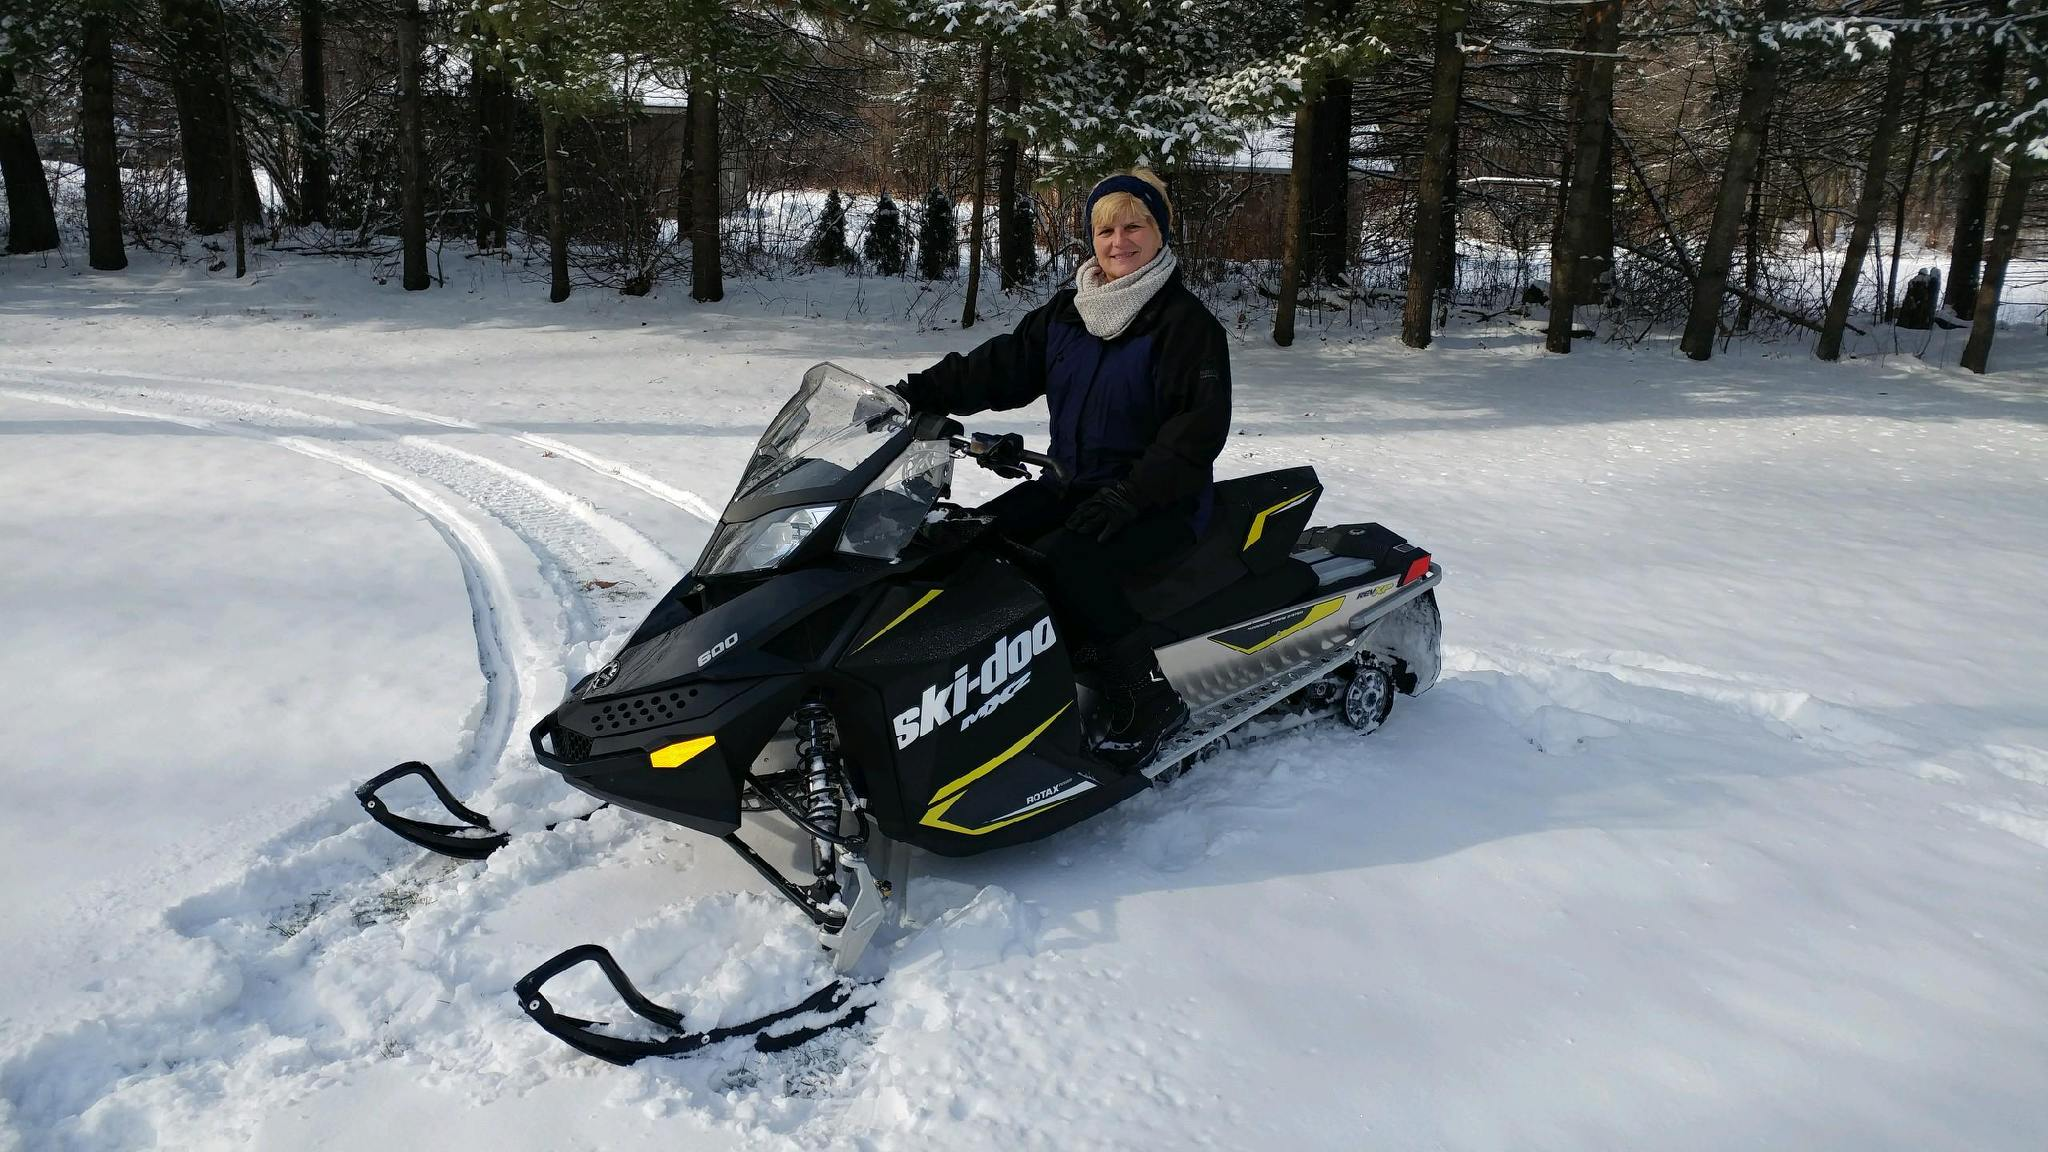 Donna and their new Ski-Doo